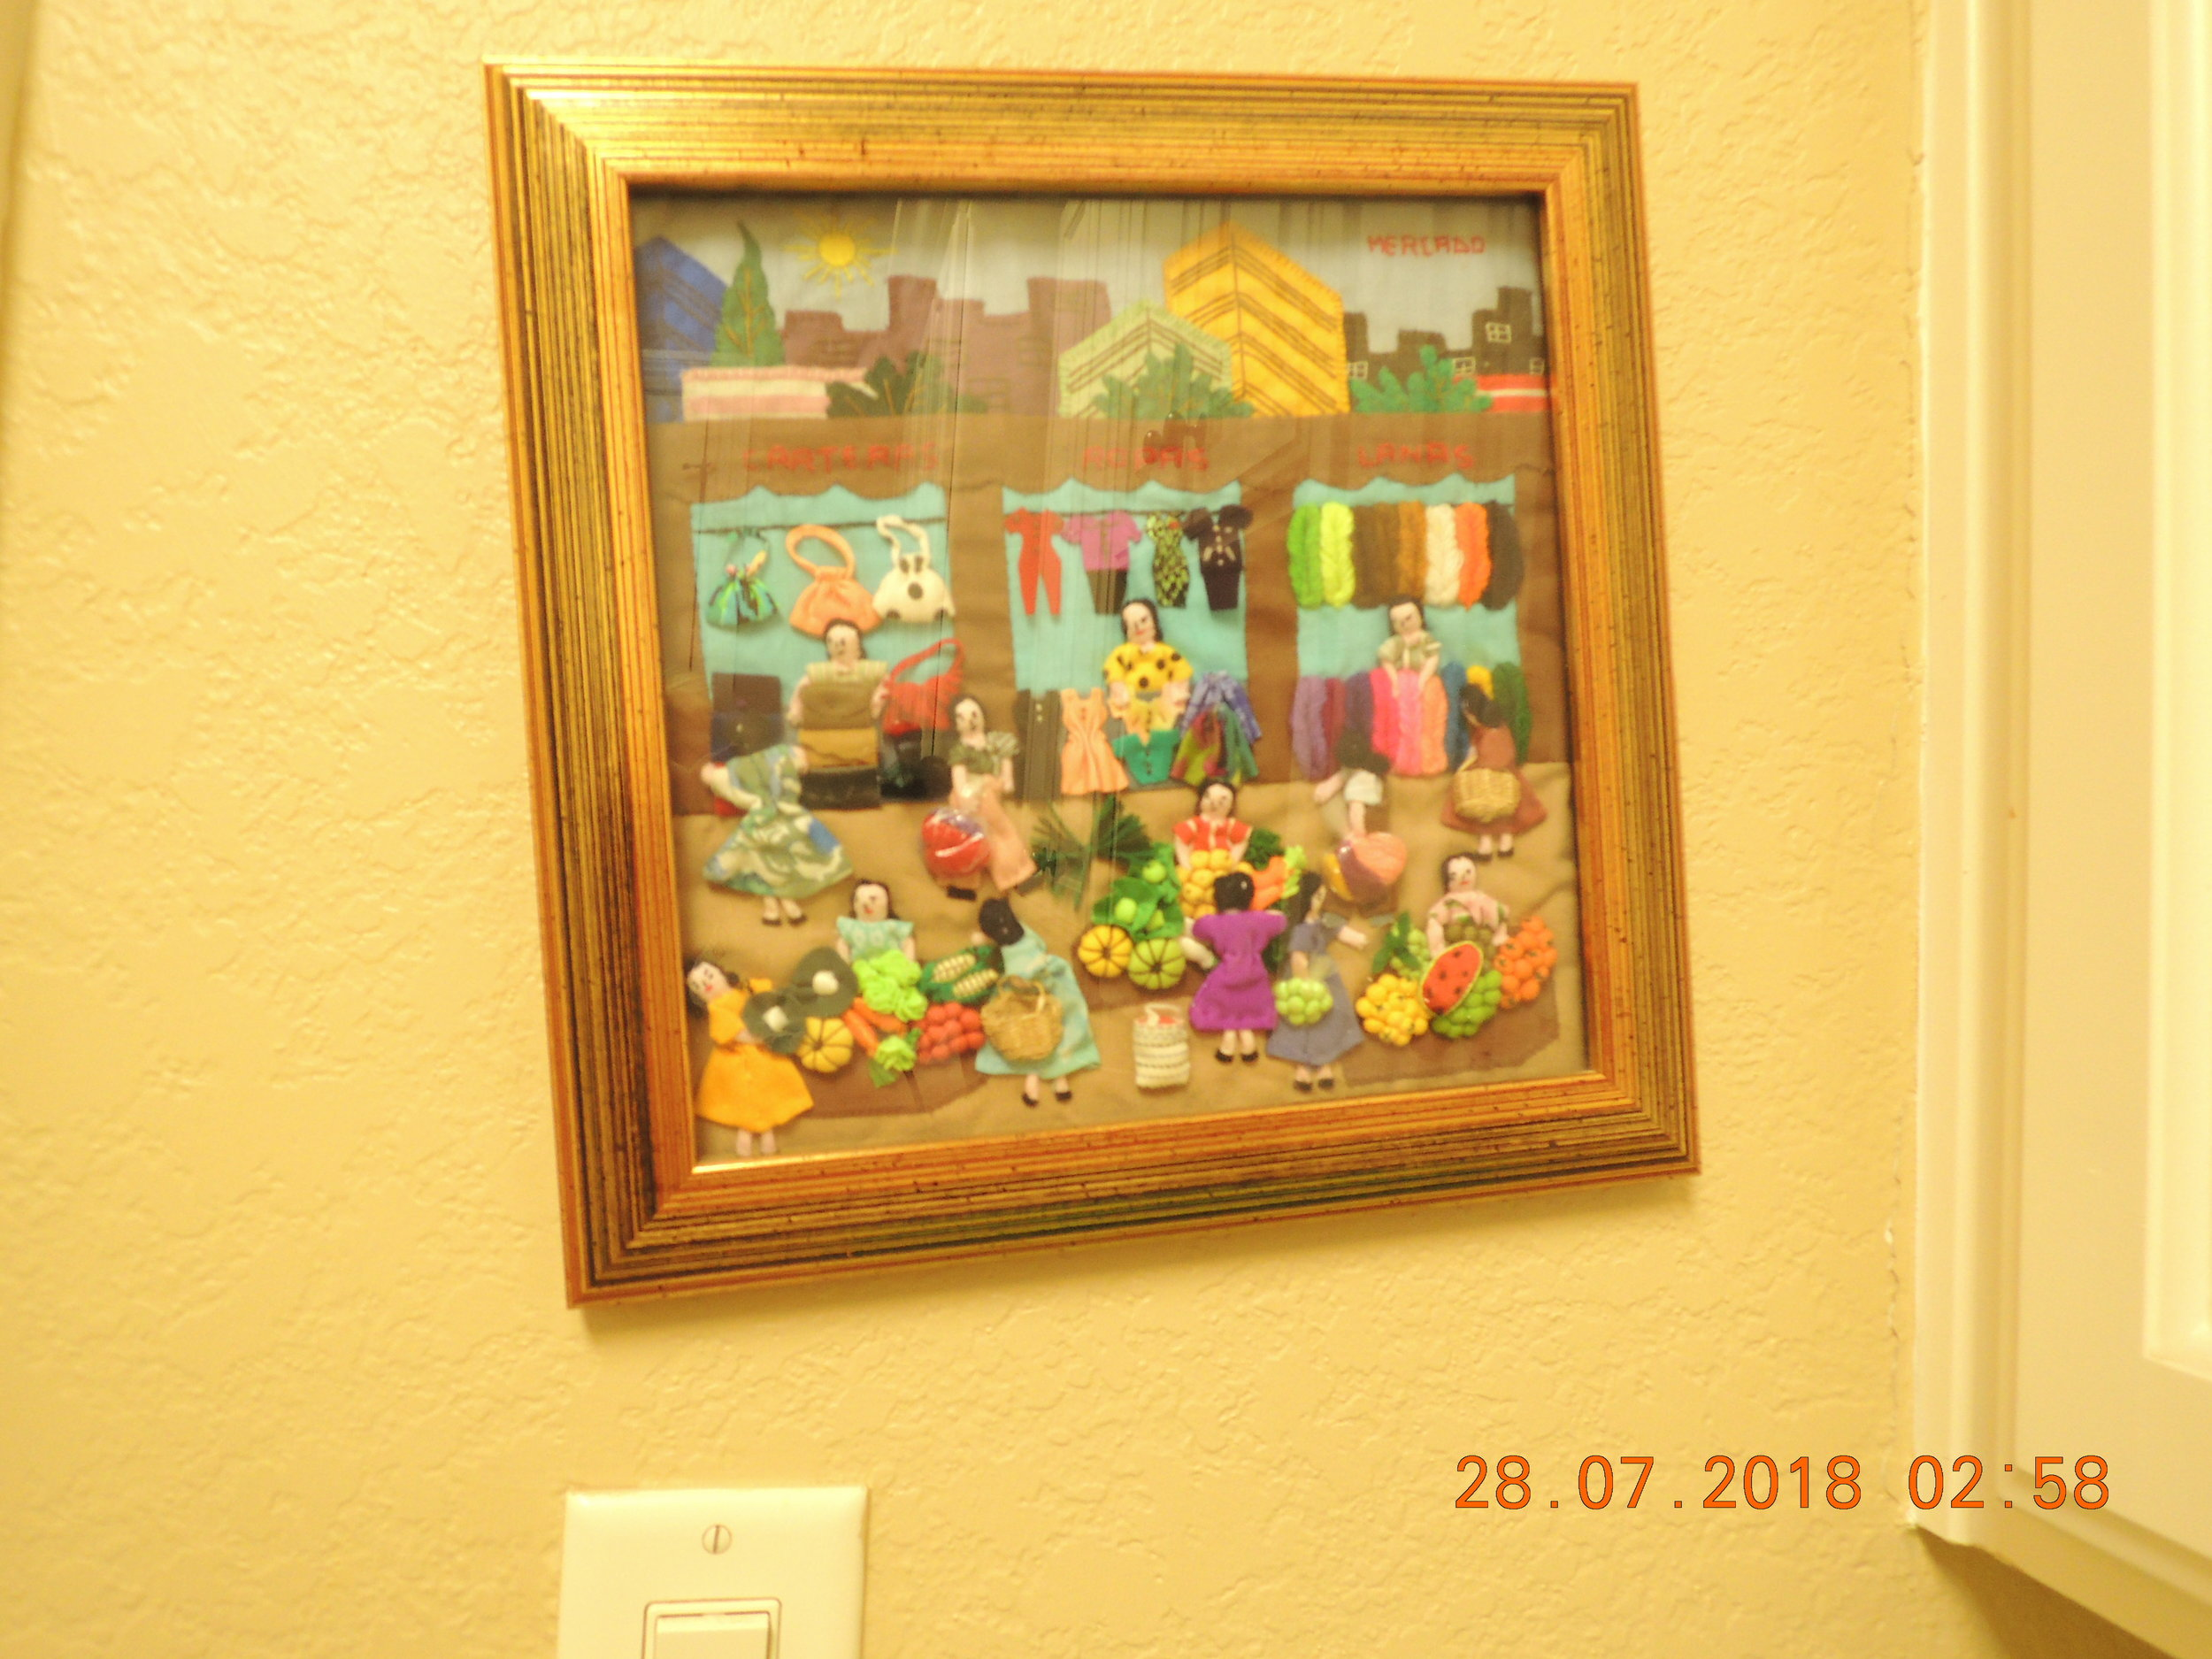 """Because it's just above the light switch, this little """"Mercado"""" picture often gets knocked askew. If it's not a right angle it's a wrong angle!"""